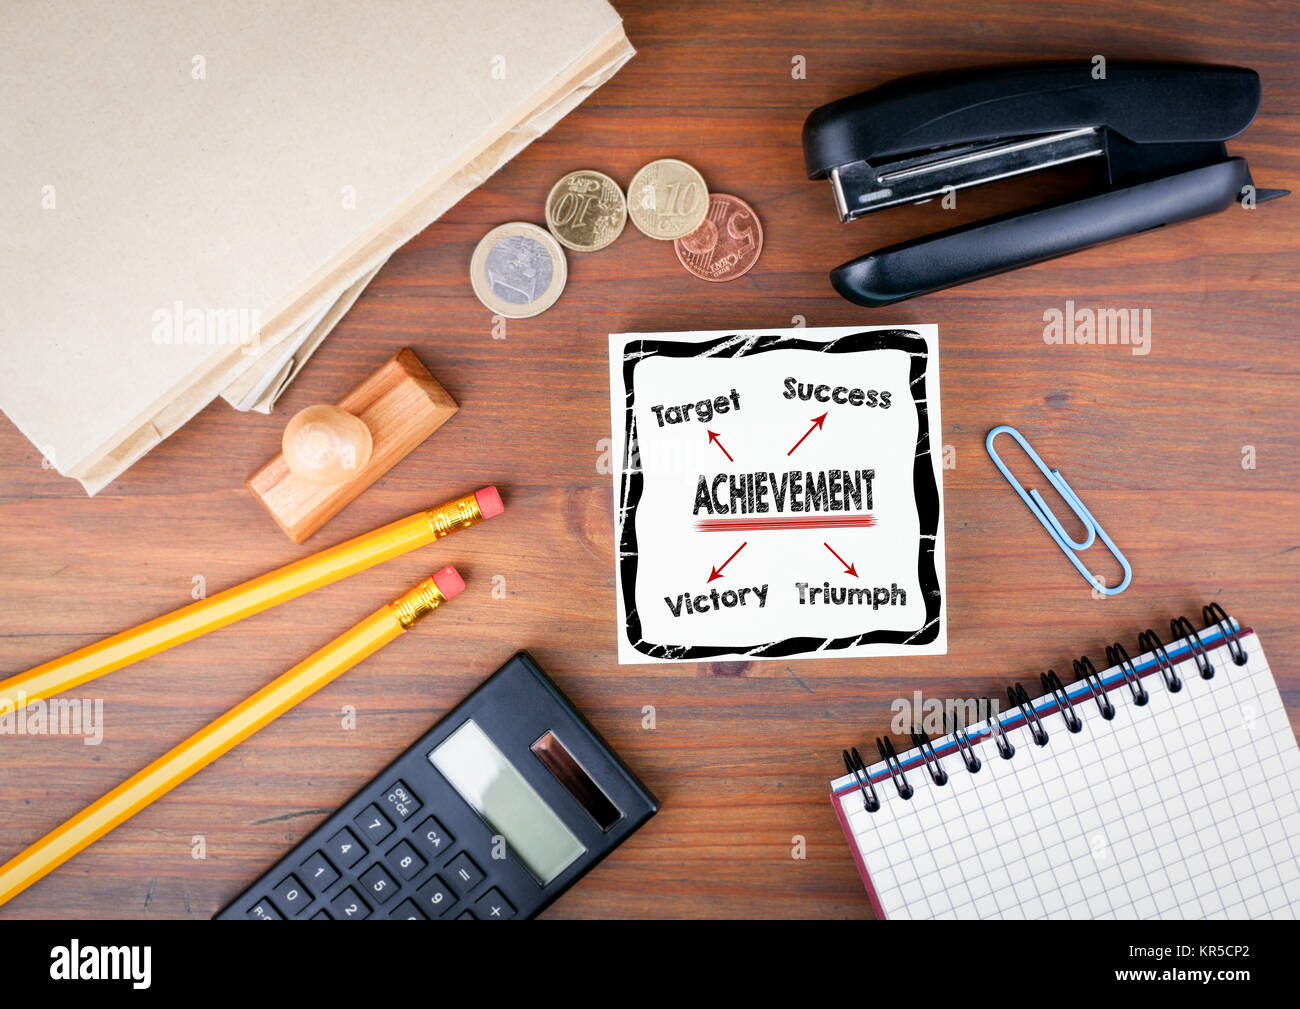 achievement concept. Office desk with stationery, chart and communication background - Stock Image